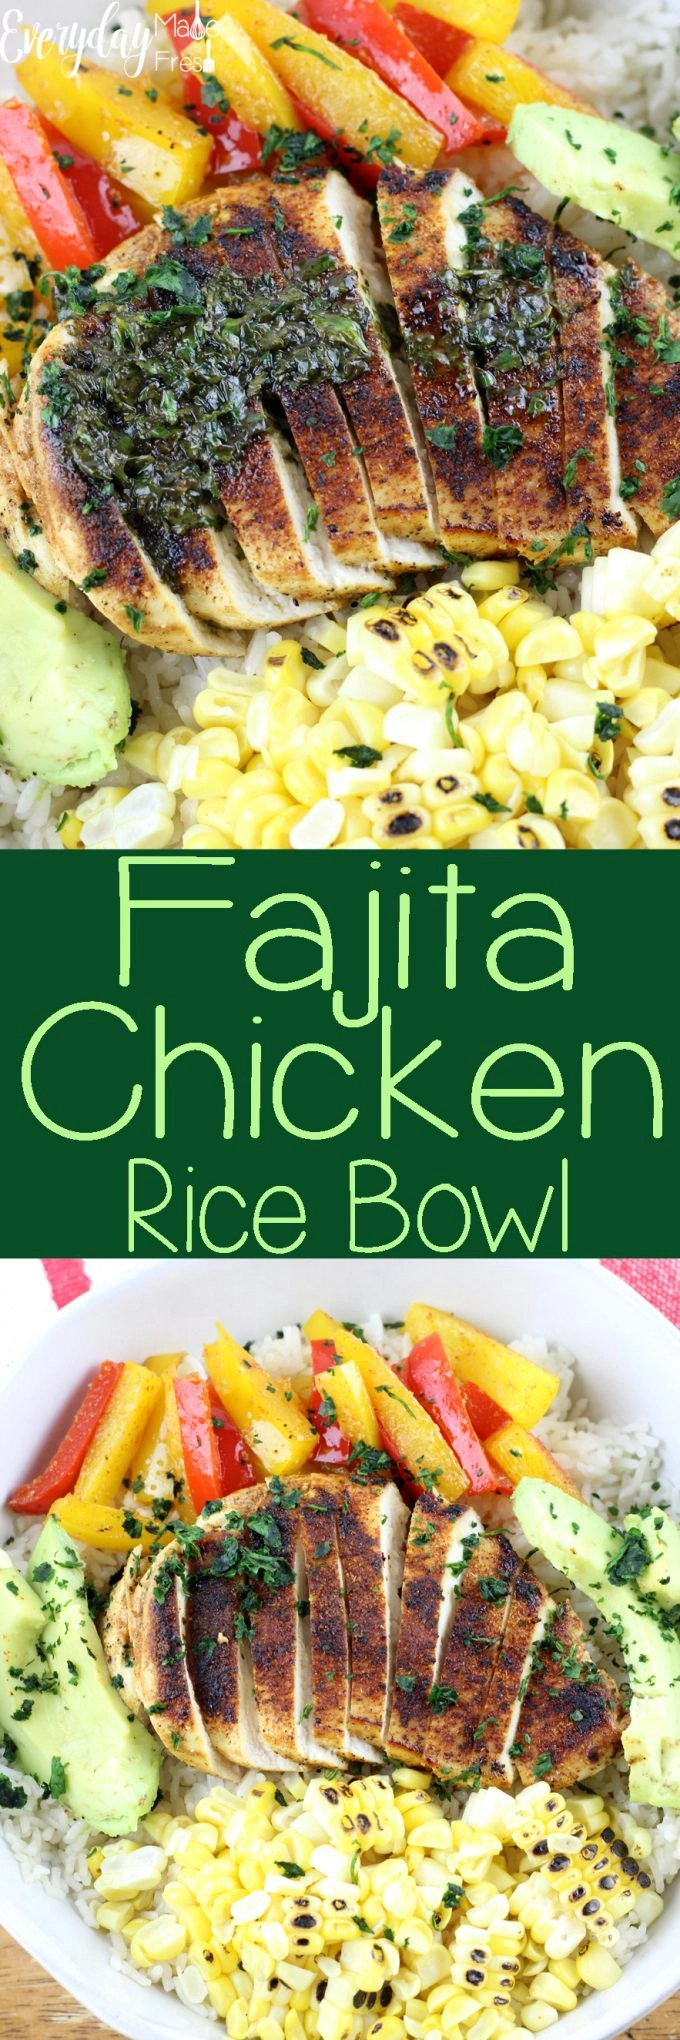 All the flavors of fajitas in this simple and tasty Fajita Chicken Rice Bowl! Perfect for lunches or a fast and healthy dinner.   EverydayMadeFresh.com